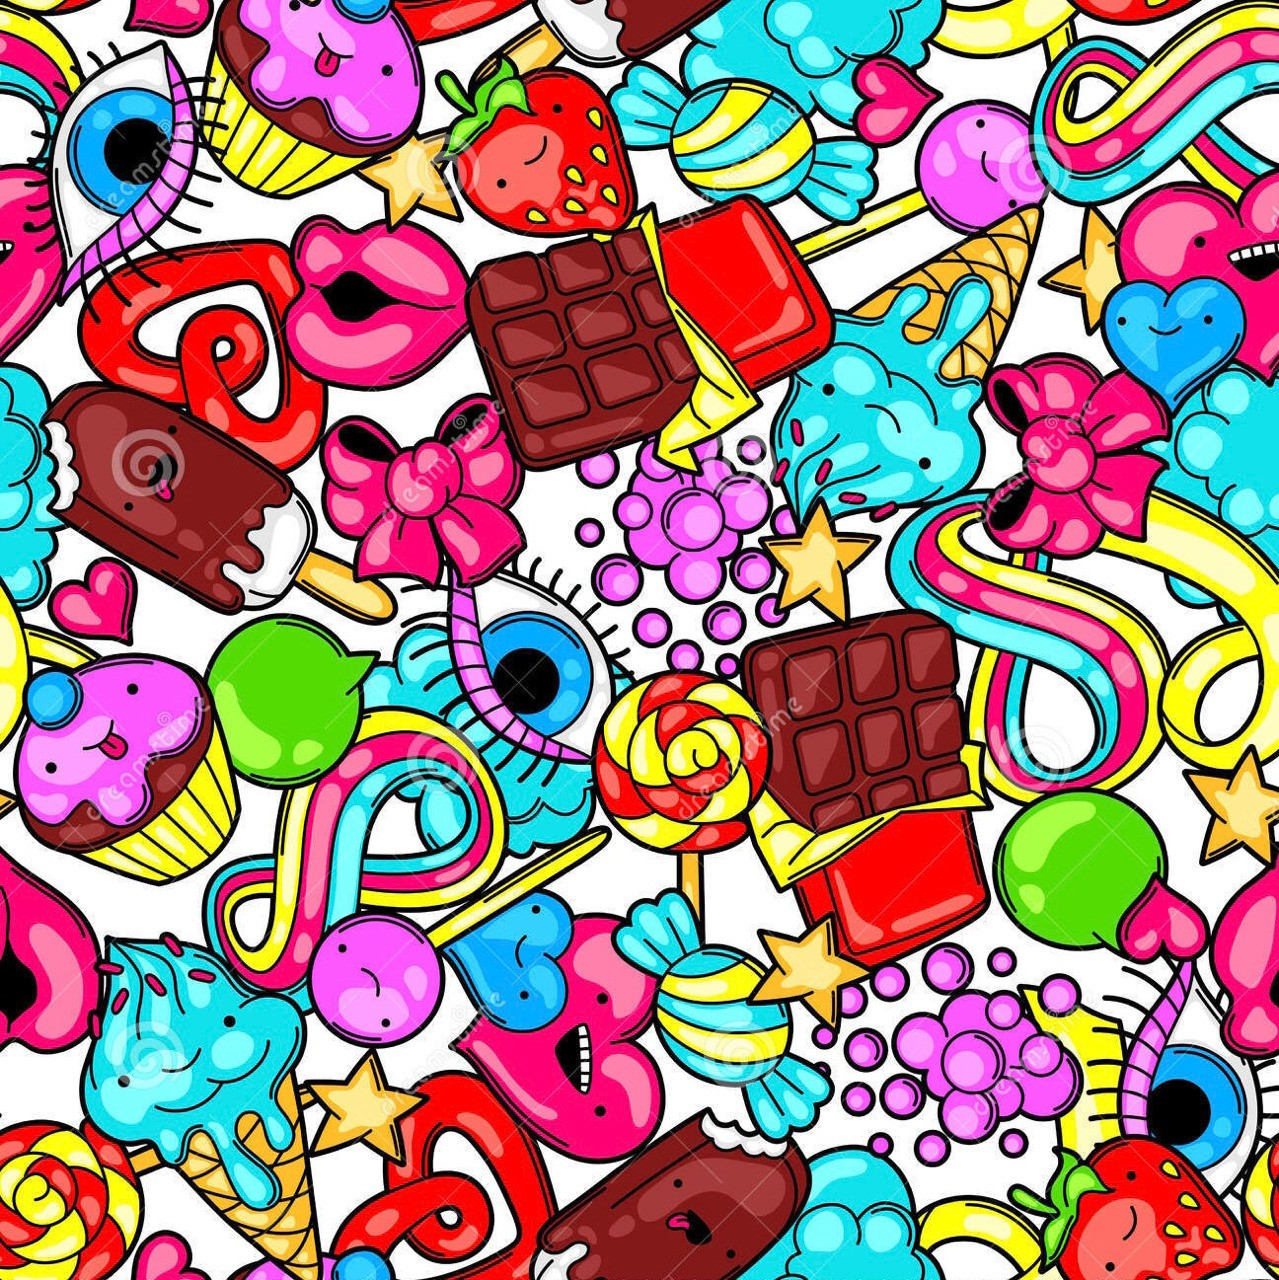 YUMMERS❗️🍬🍭🍕🍟🍇🍪🎂🍩🥗🥧🍒🥨🧀🥣🍻🍦🍡🍸🍔 cover image